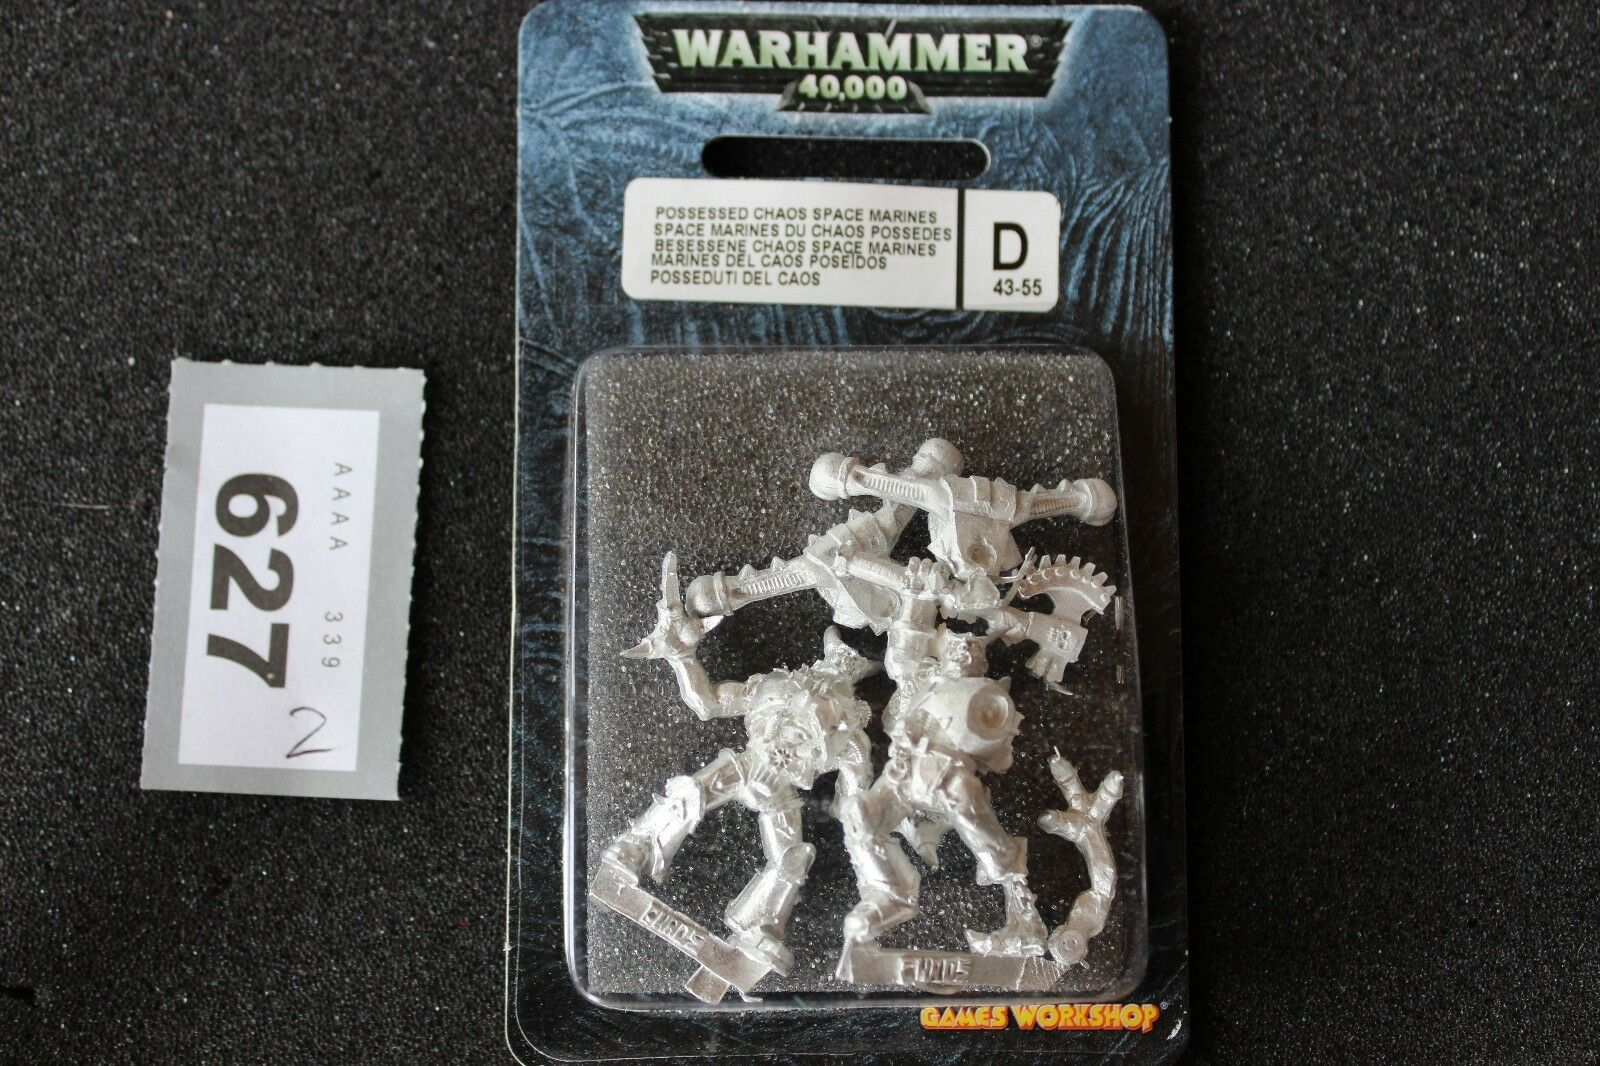 Games Workshop Warhammer 40k Possessed Chaos Space Marines x2 BNIB GW Metal OOP